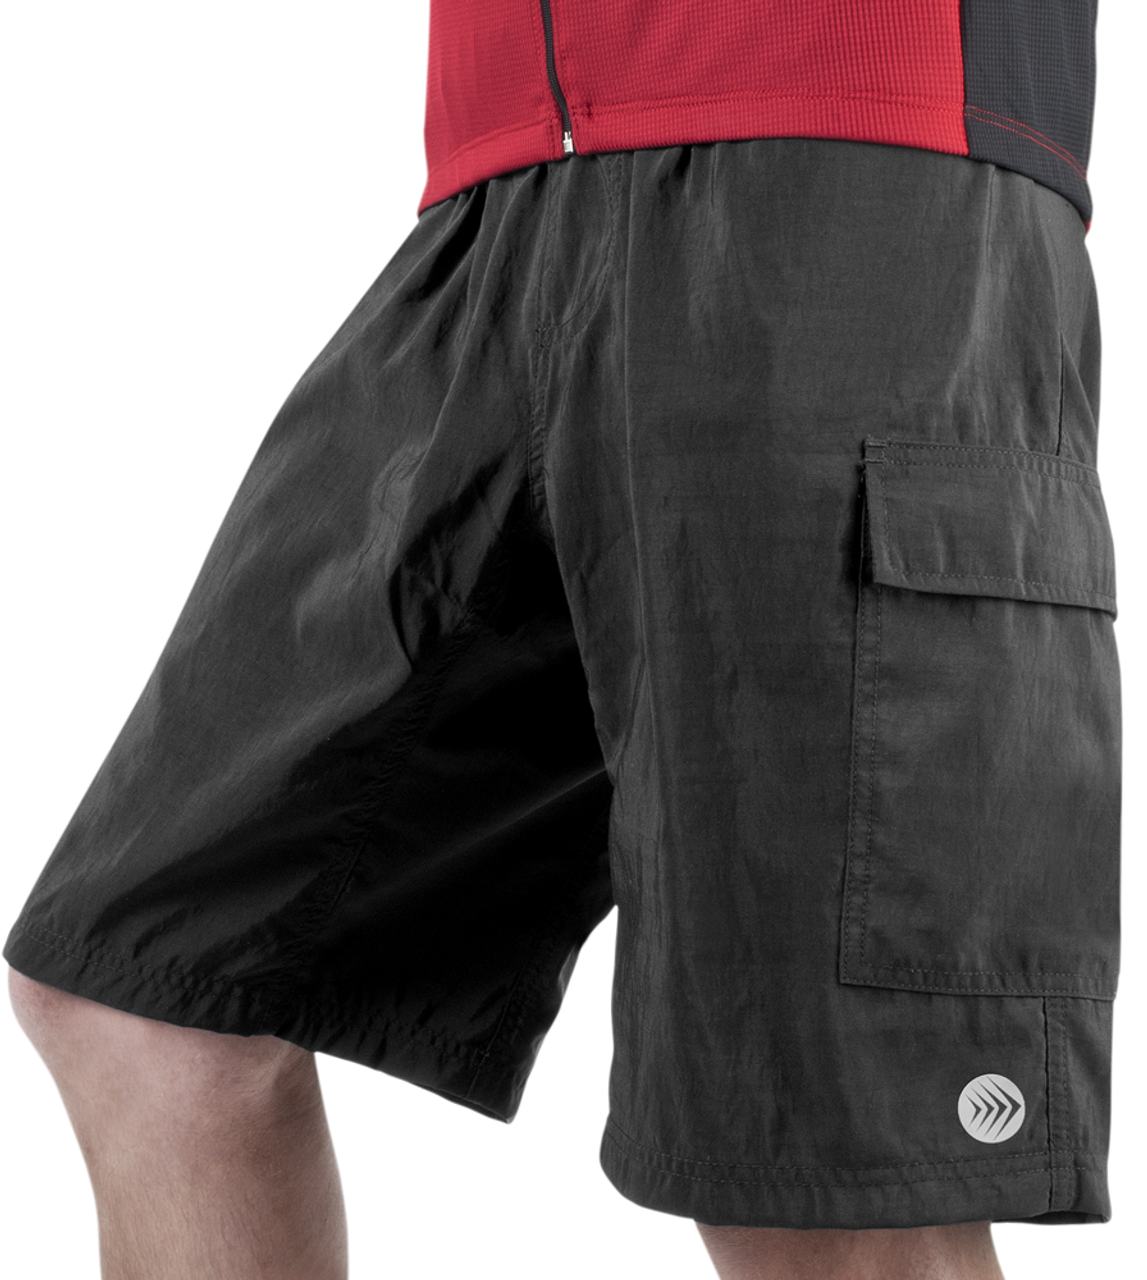 733ea5a74 Cargo Mountain Bike Shorts with Padded Underliner Black Front View